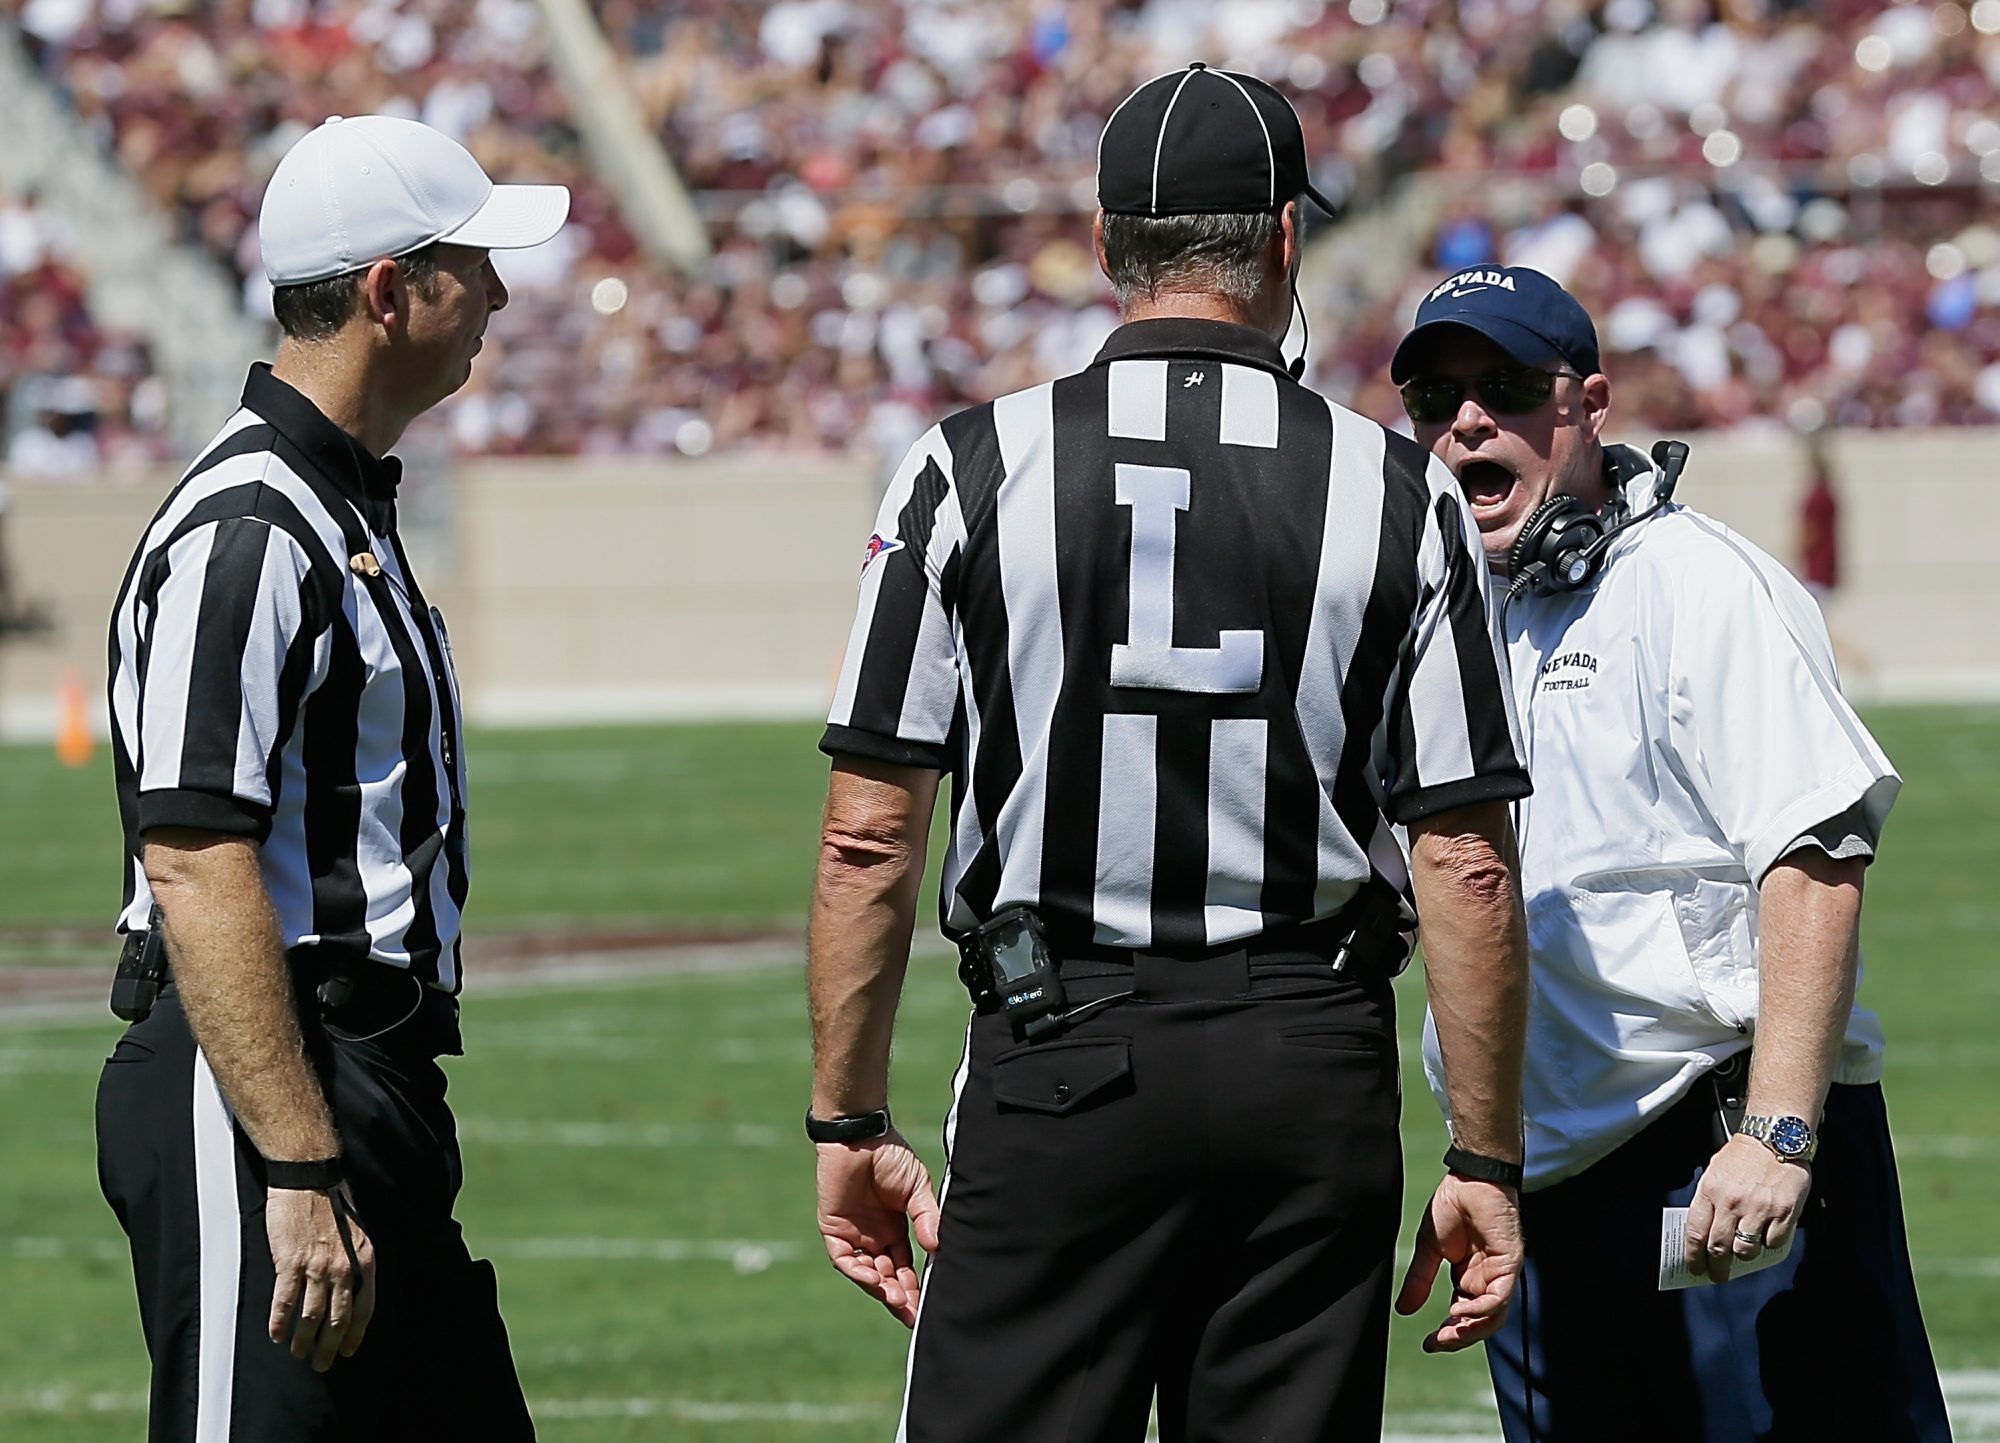 Nevada coach Brian Polian has words with an official during Saturday's loss.